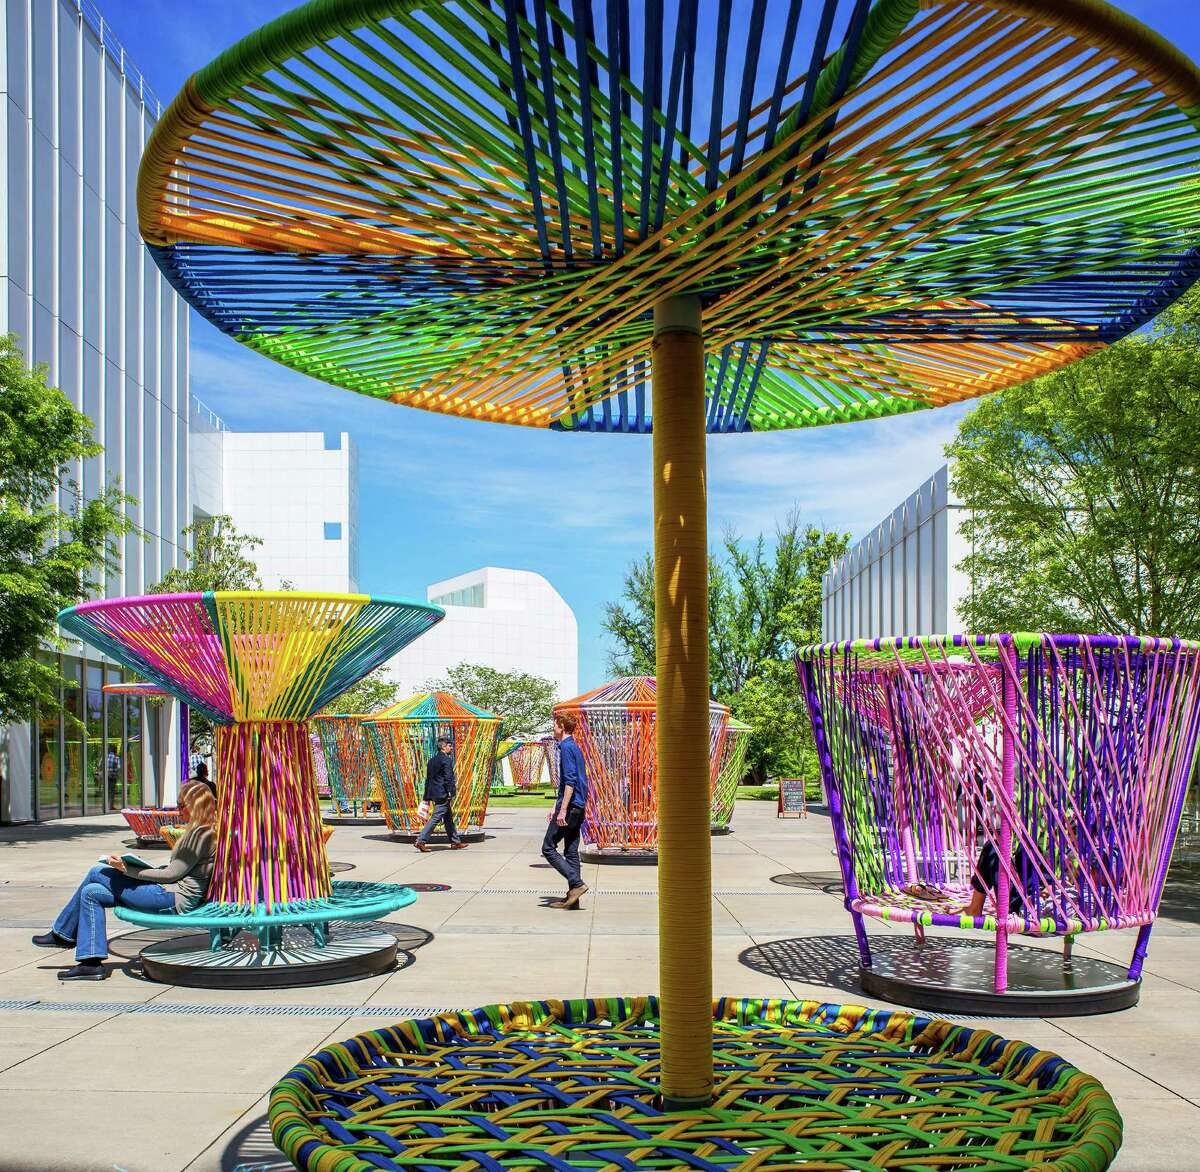 """""""Los Trompos,"""" an exhibit of 20 wildly colorful, interactive sculptures by Mexico City designers Héctor Esrawe and Ignacio Cadena, will invite visitors to play at Discovery Green Nov. 14 through early March. They were previously seen at the High Museum of Art in Atlanta."""